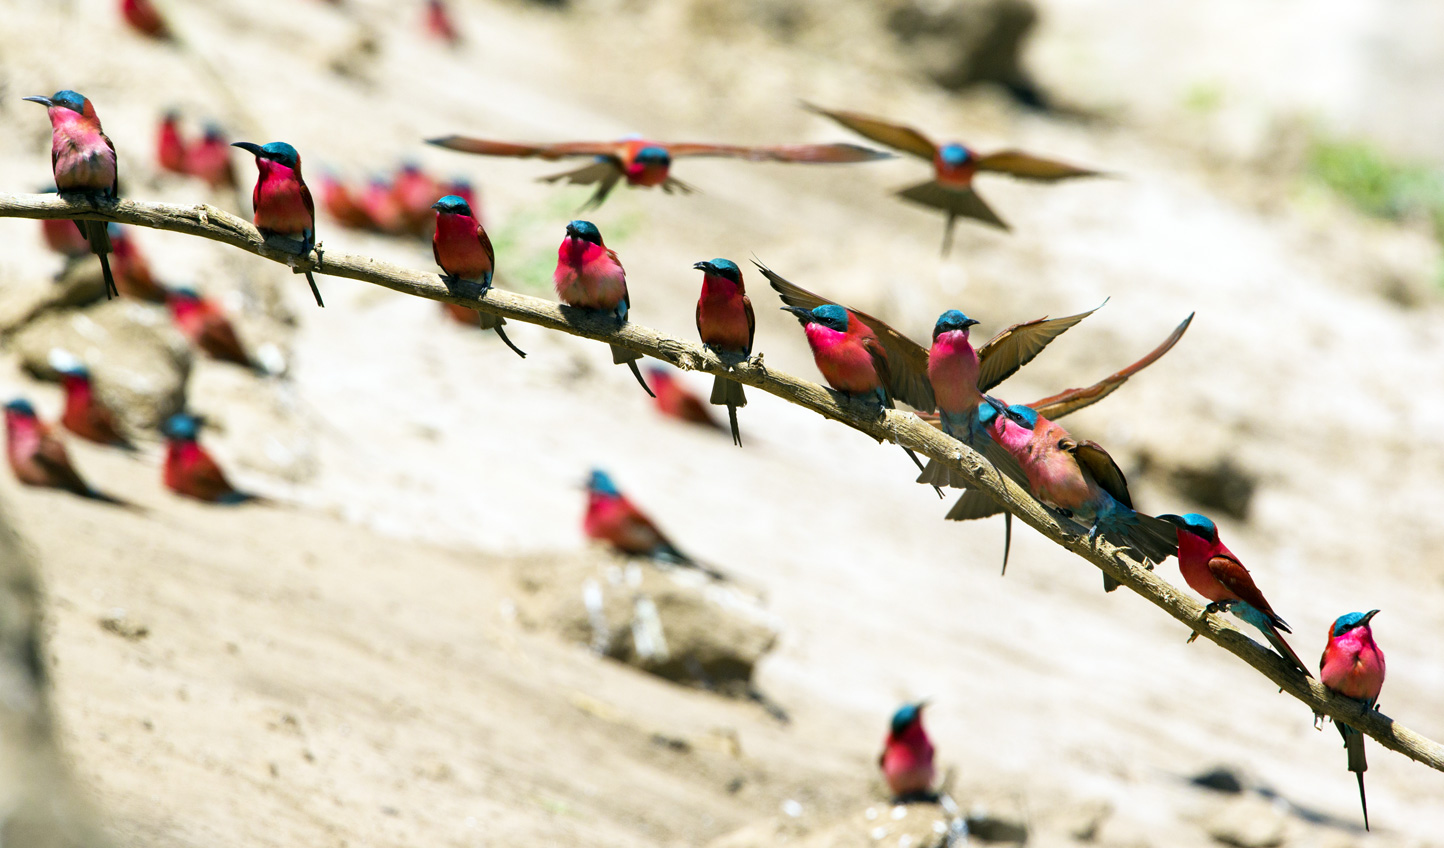 Go on a walking safari to observe the flora and bird life